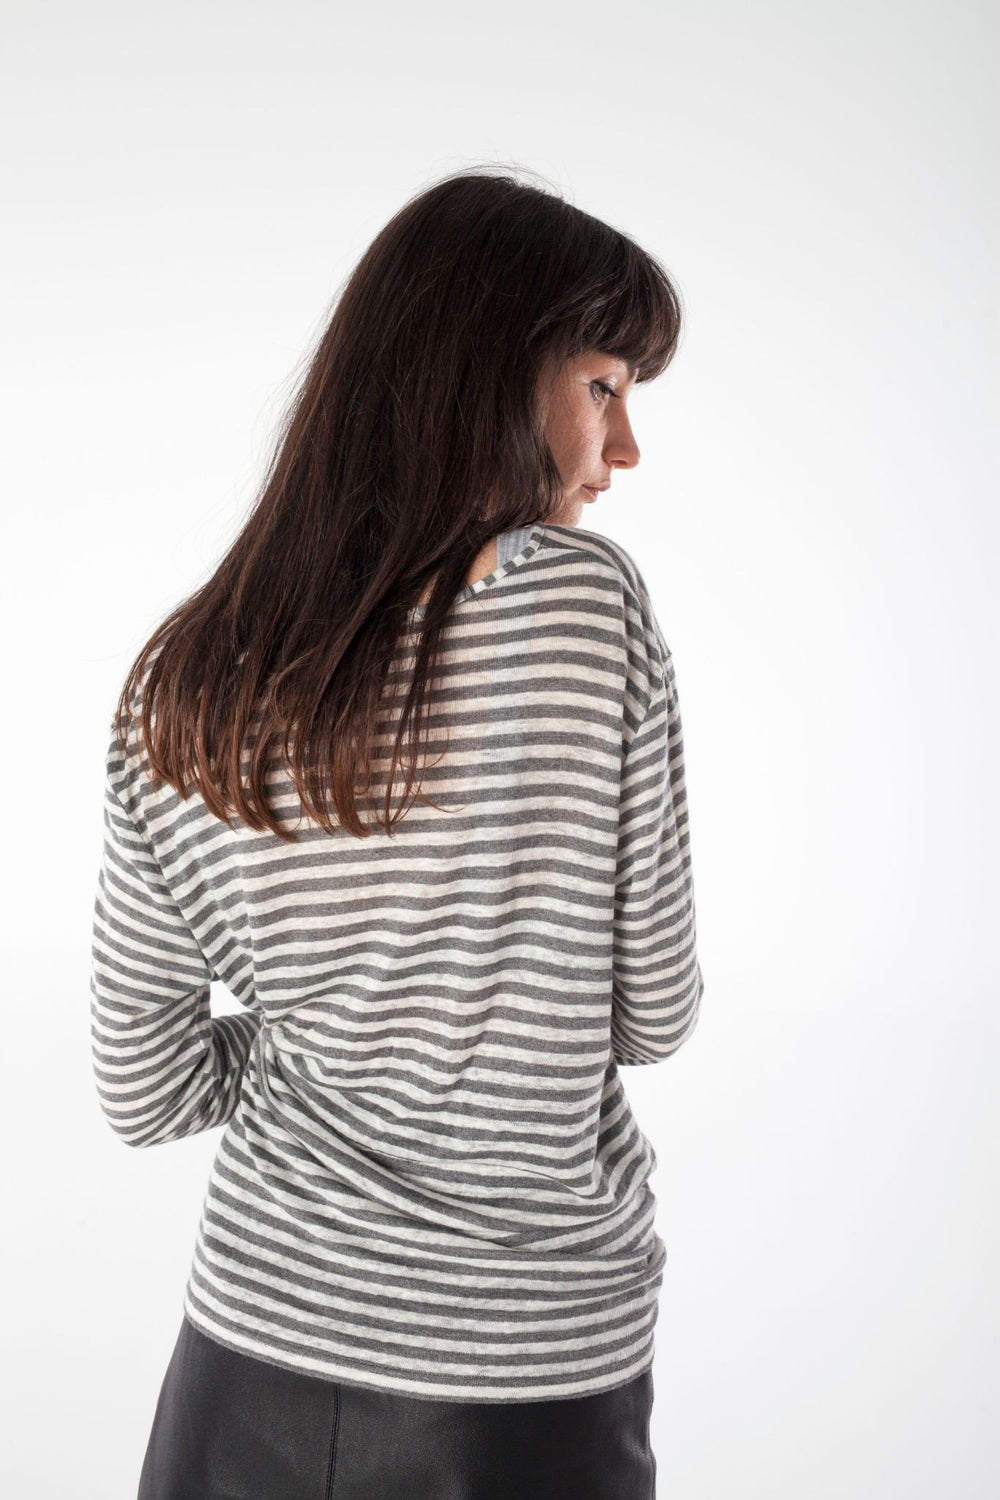 shop ethical sustainable & ethical clothing by UNCLE may ANNIE grey/white striped tee